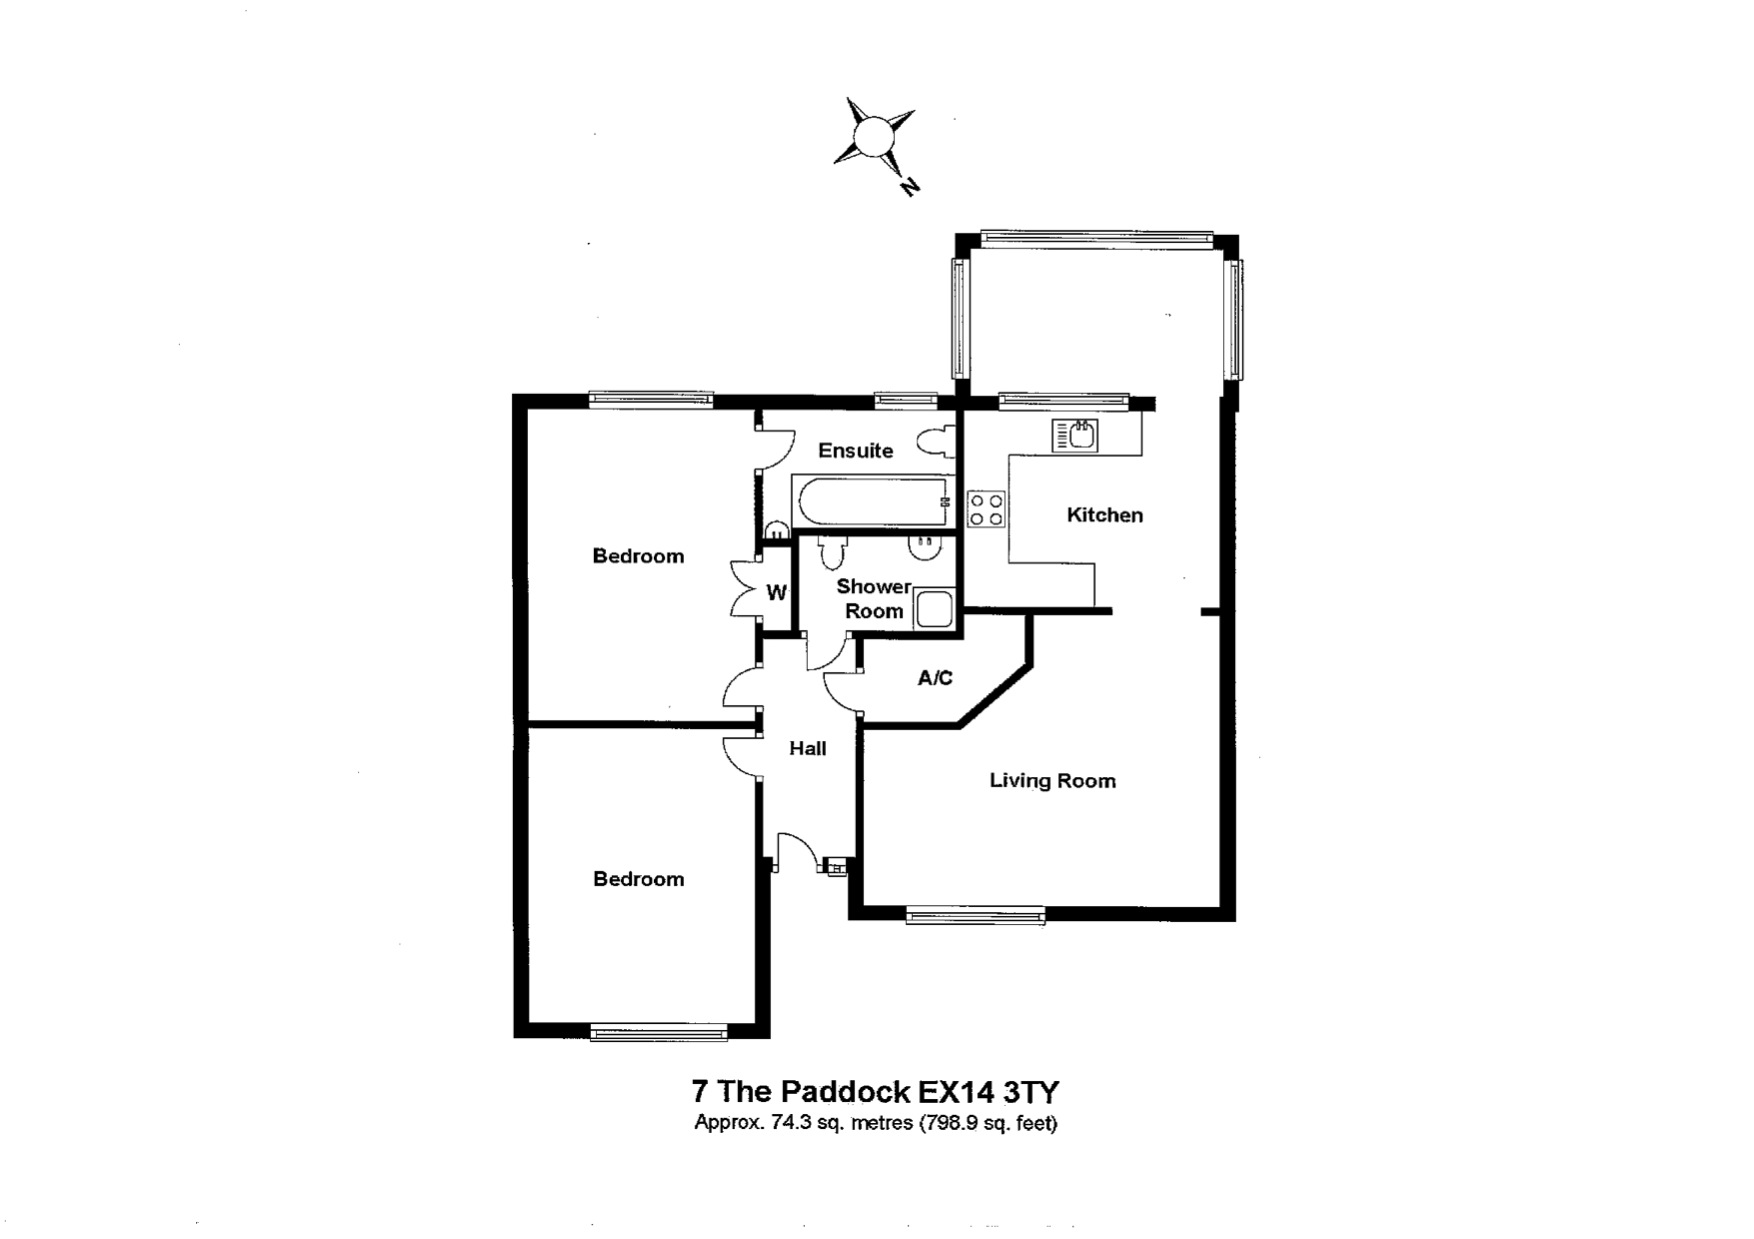 7 The Paddocks Floorplan